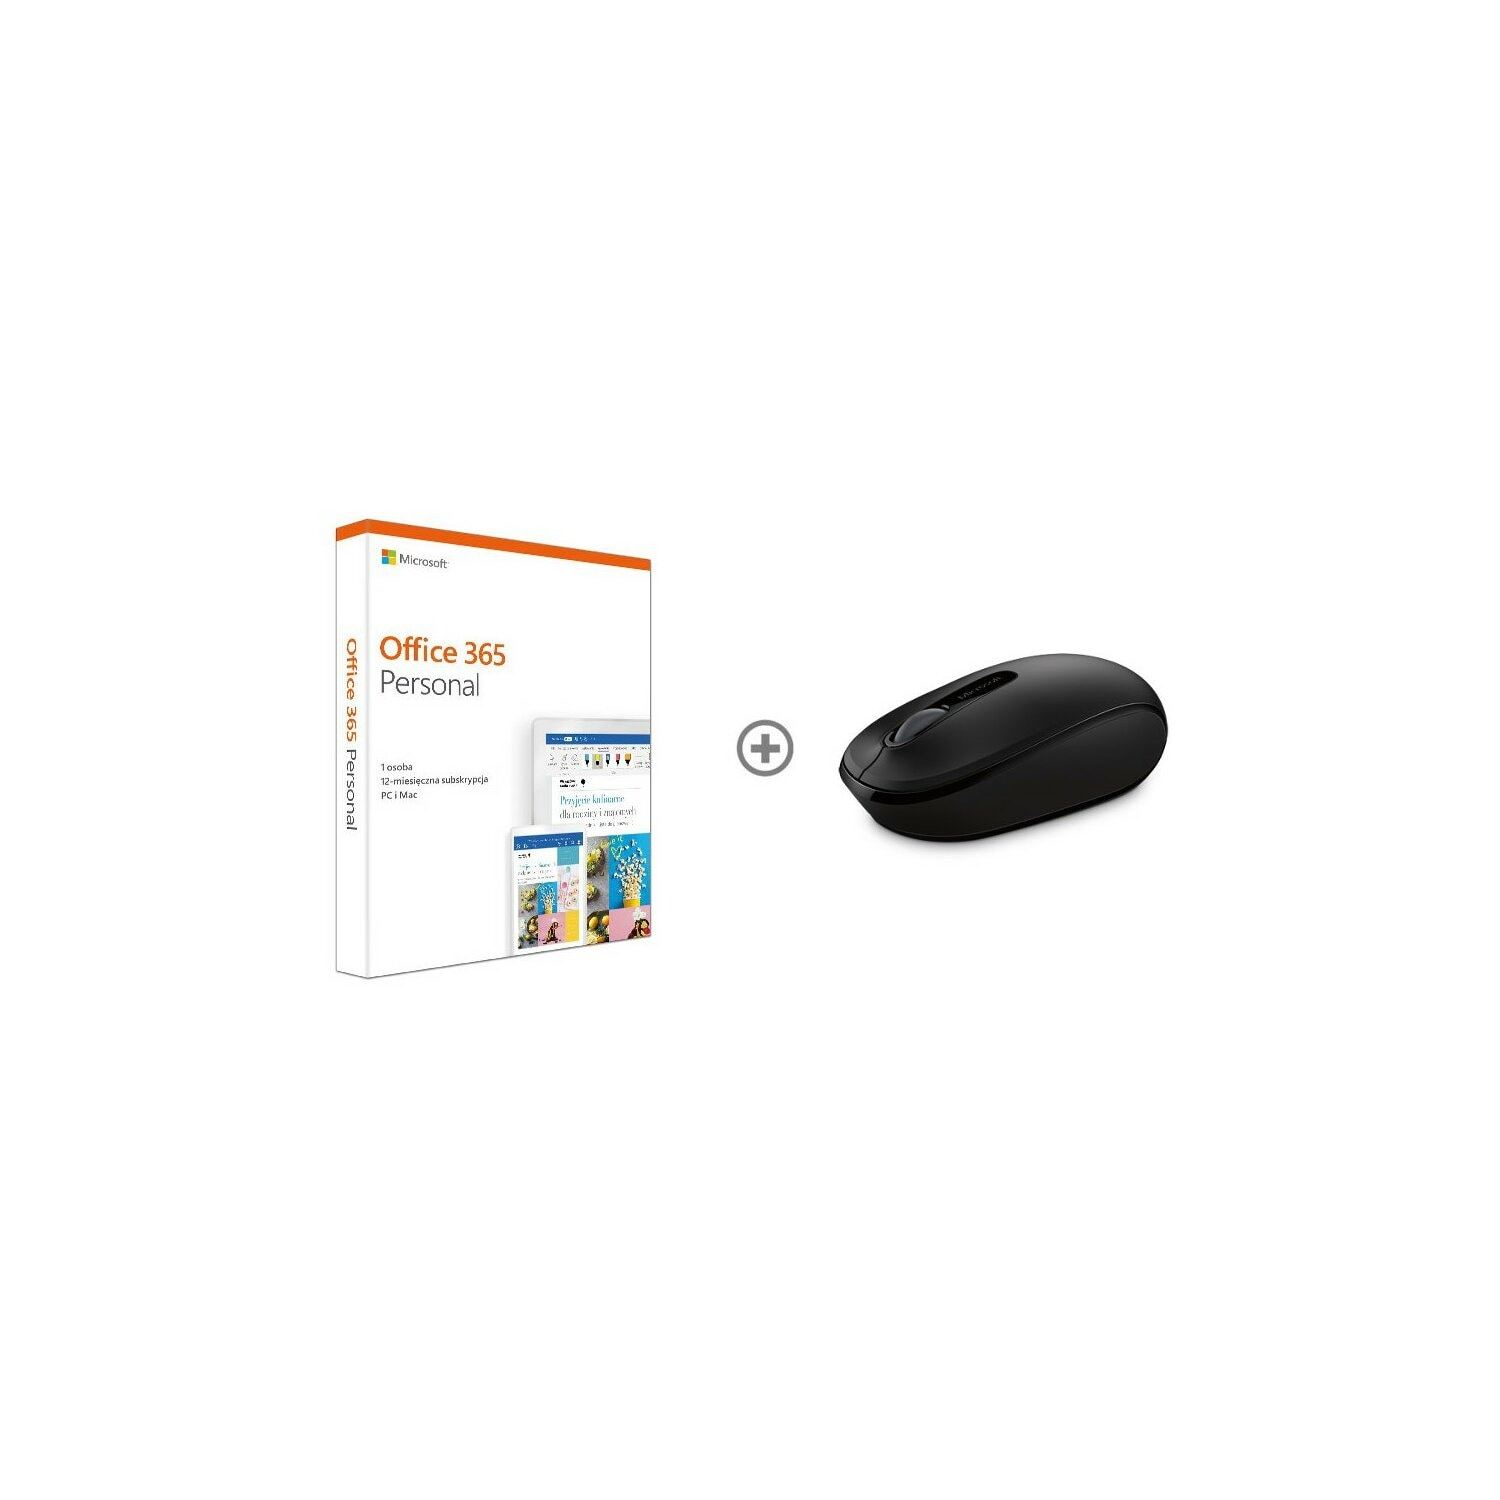 Program Microsoft Office 365 Personal PL Win/Mac + Microsoft 1850 Wireless Mobile Mouse